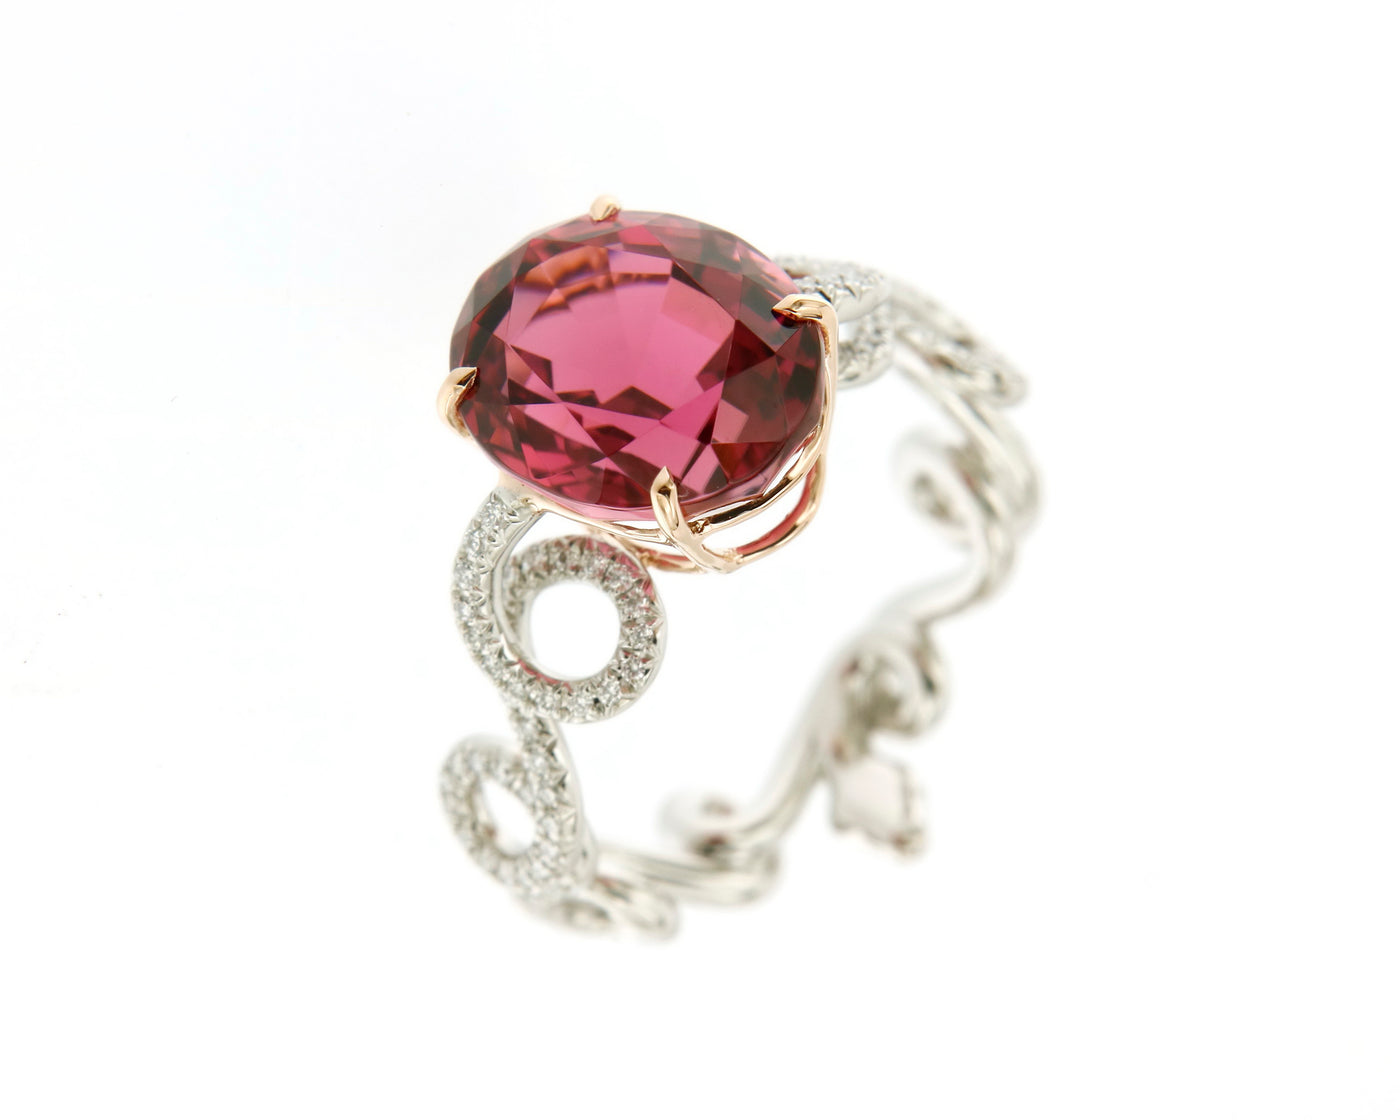 Ring Platinum with a Pink Tourmaline and White Diamonds